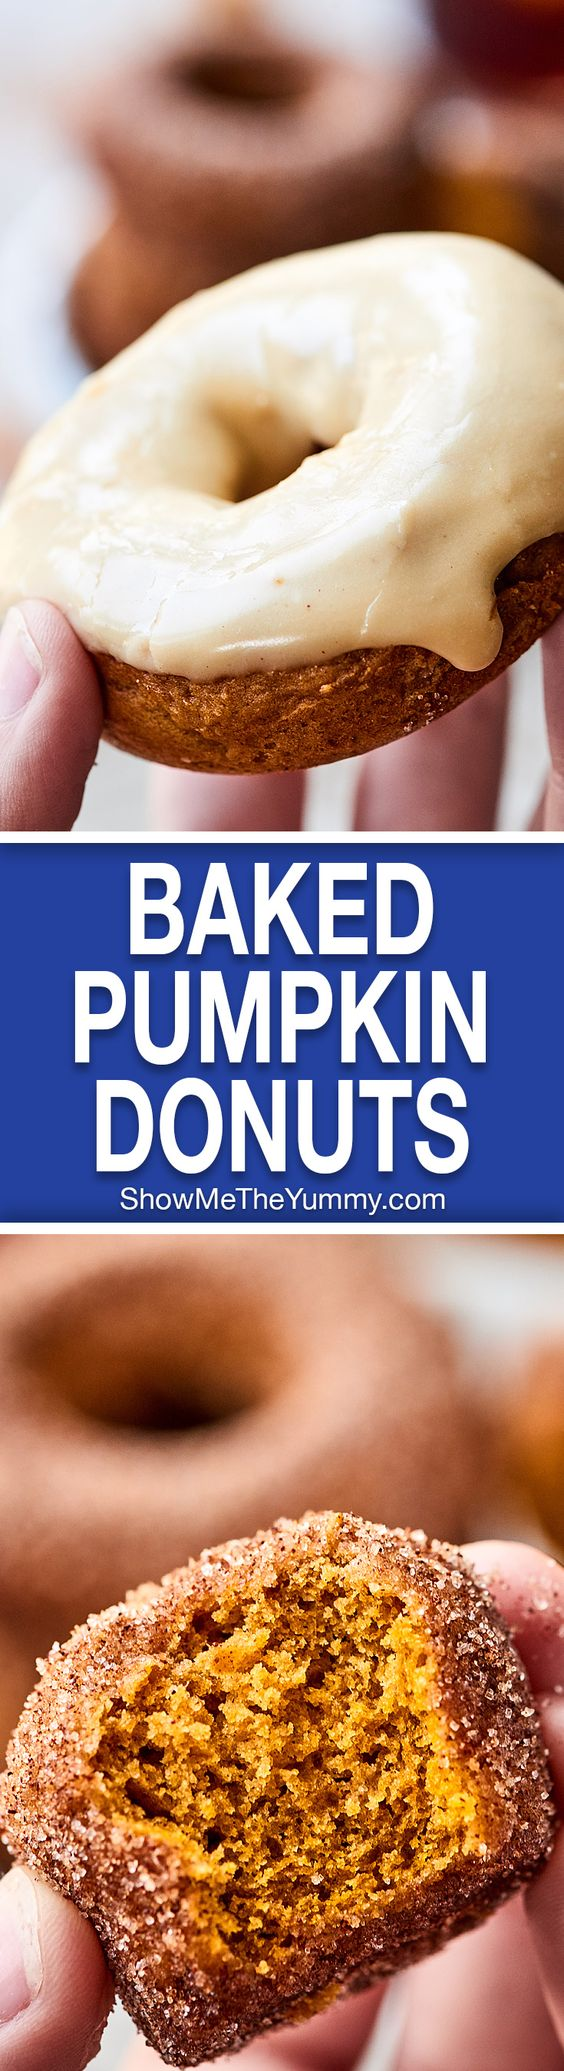 Donut recipes, Baked pumpkin and Donuts on Pinterest